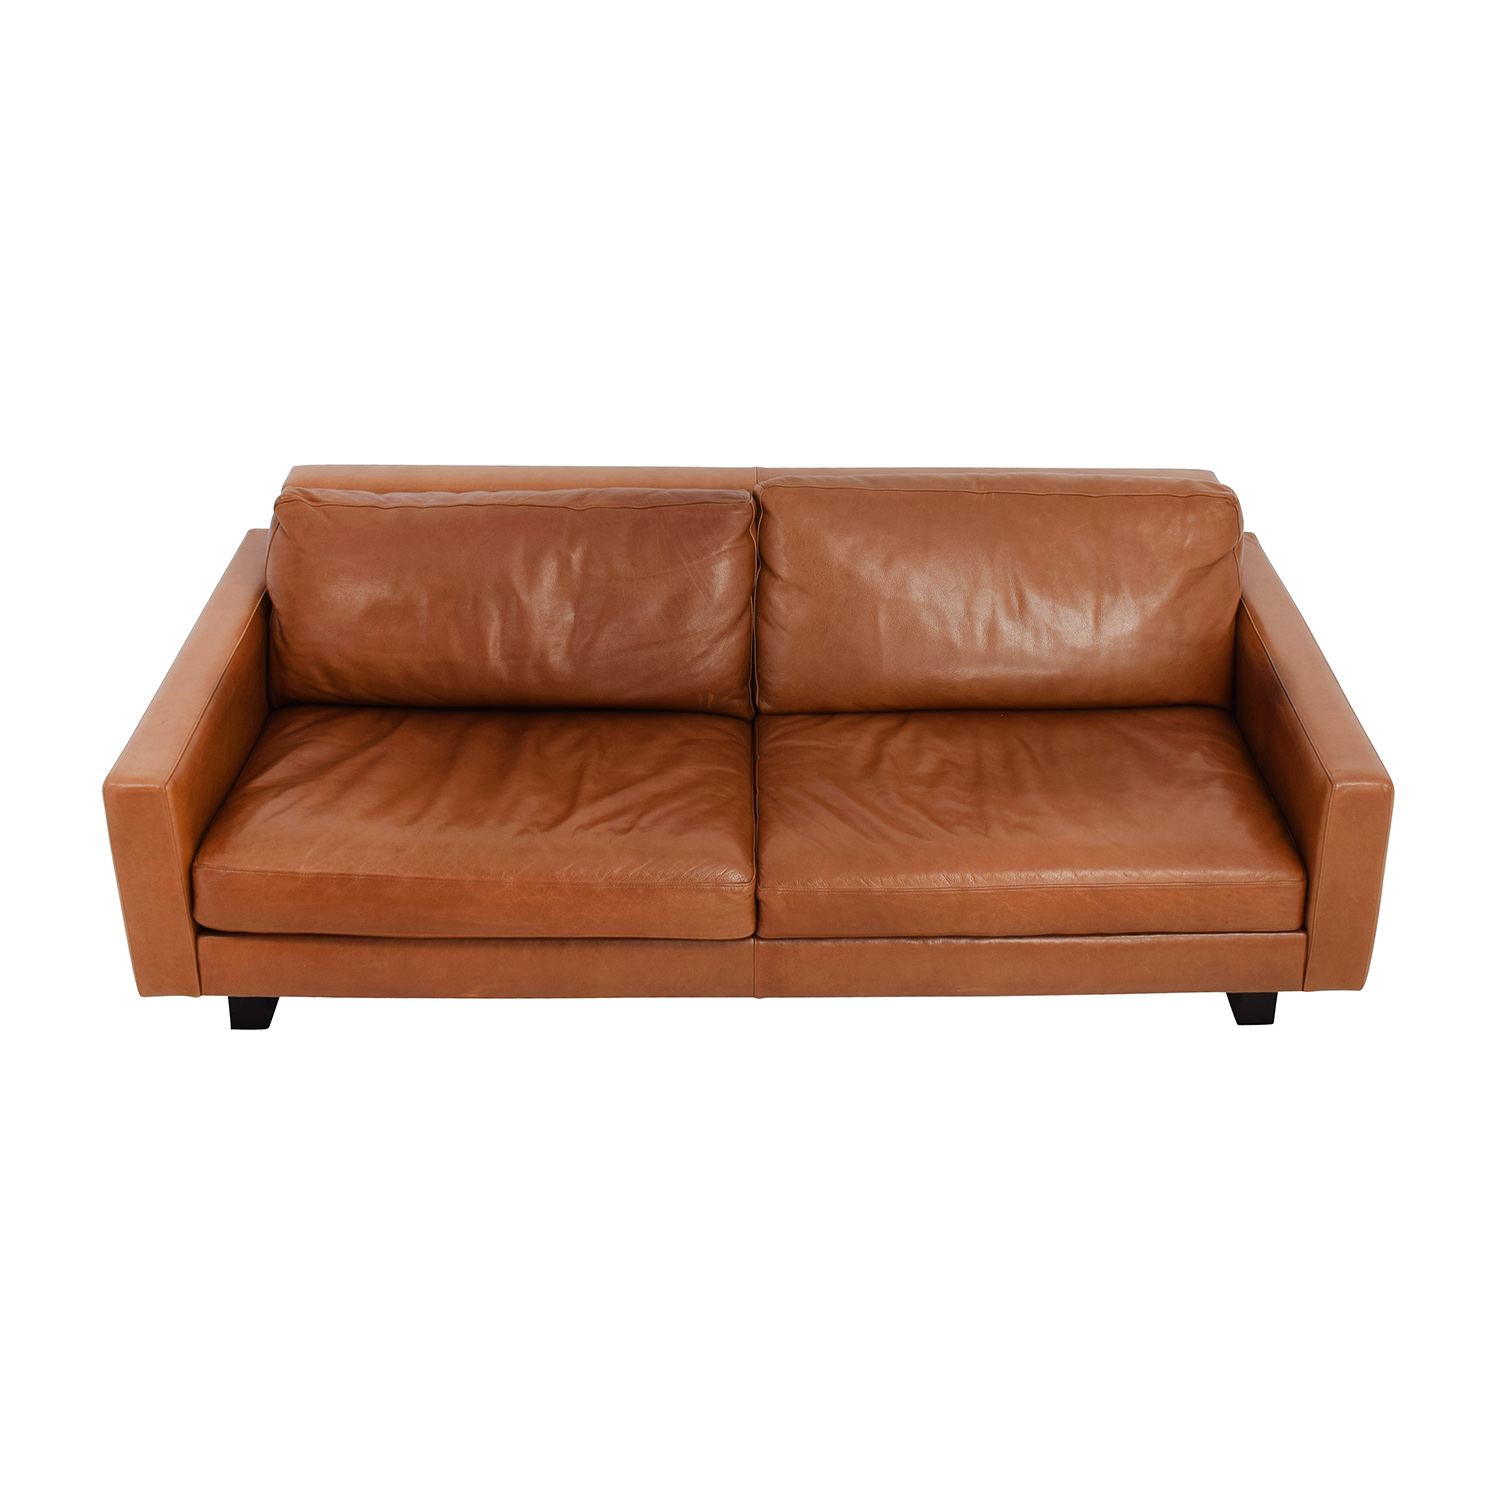 Room & Board Room & Board 79 Hess Leather Sofa second hand